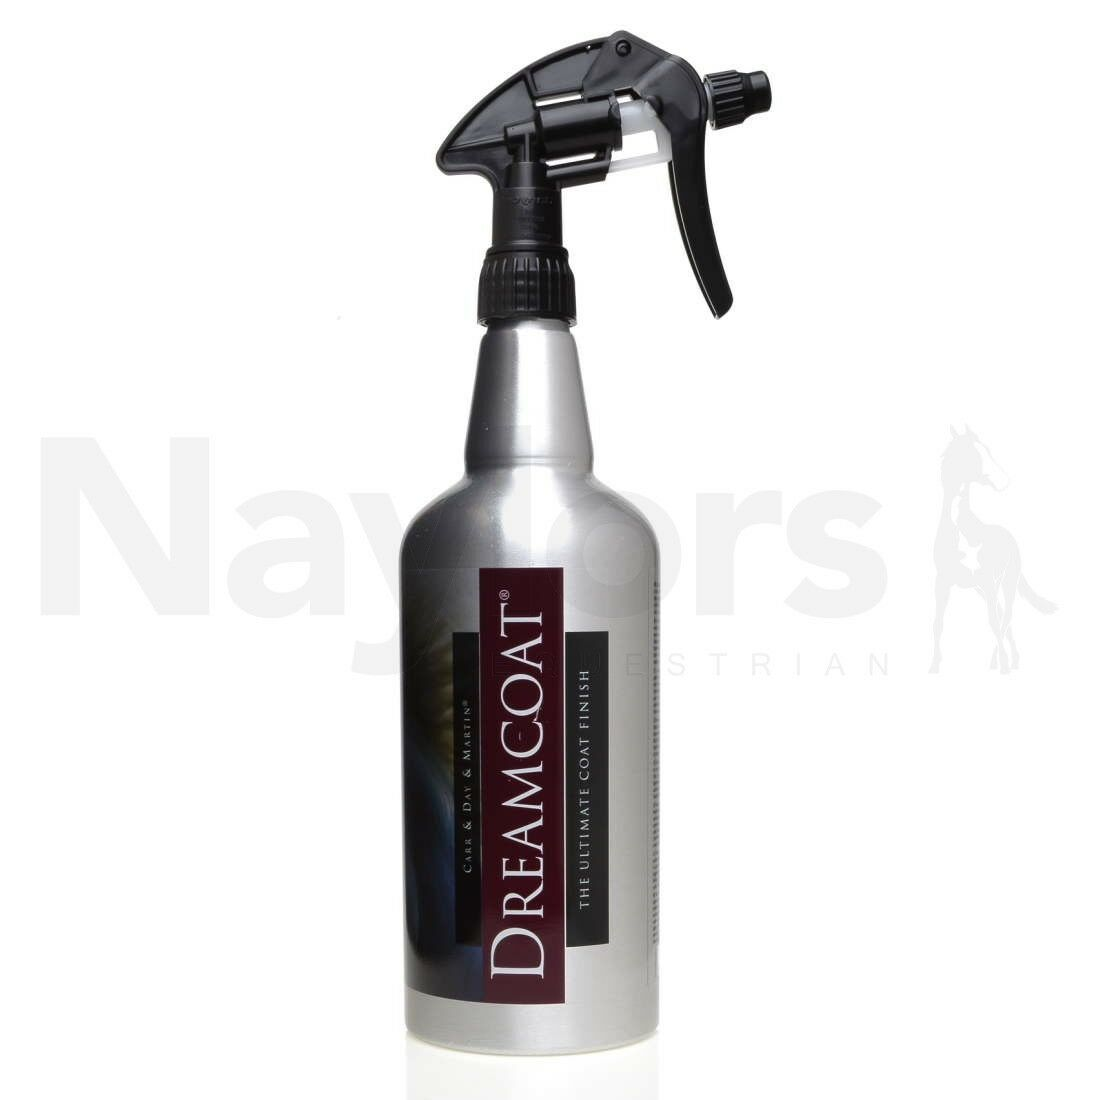 Carr & Day & Martin Dreamcoat 1 Litre Produces the ultimate non greasy finish